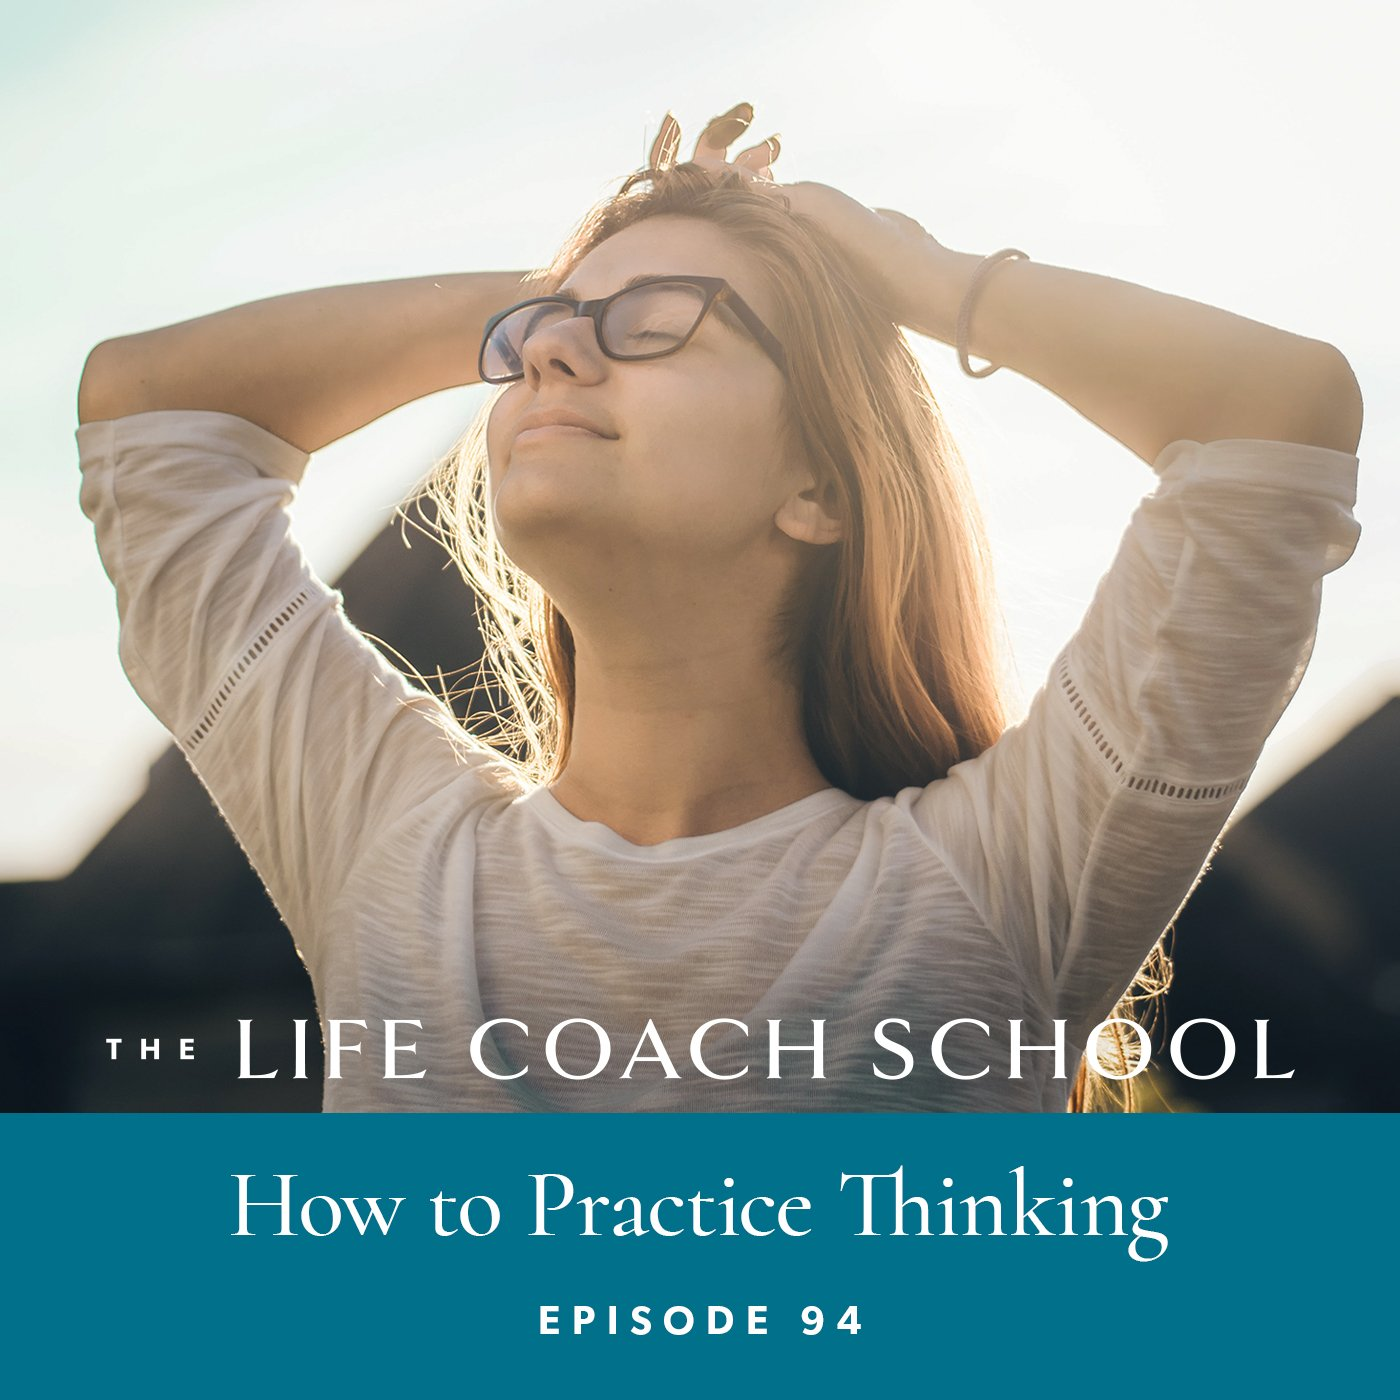 The Life Coach School Podcast with Brooke Castillo | Episode 94 | How to Practice Thinking